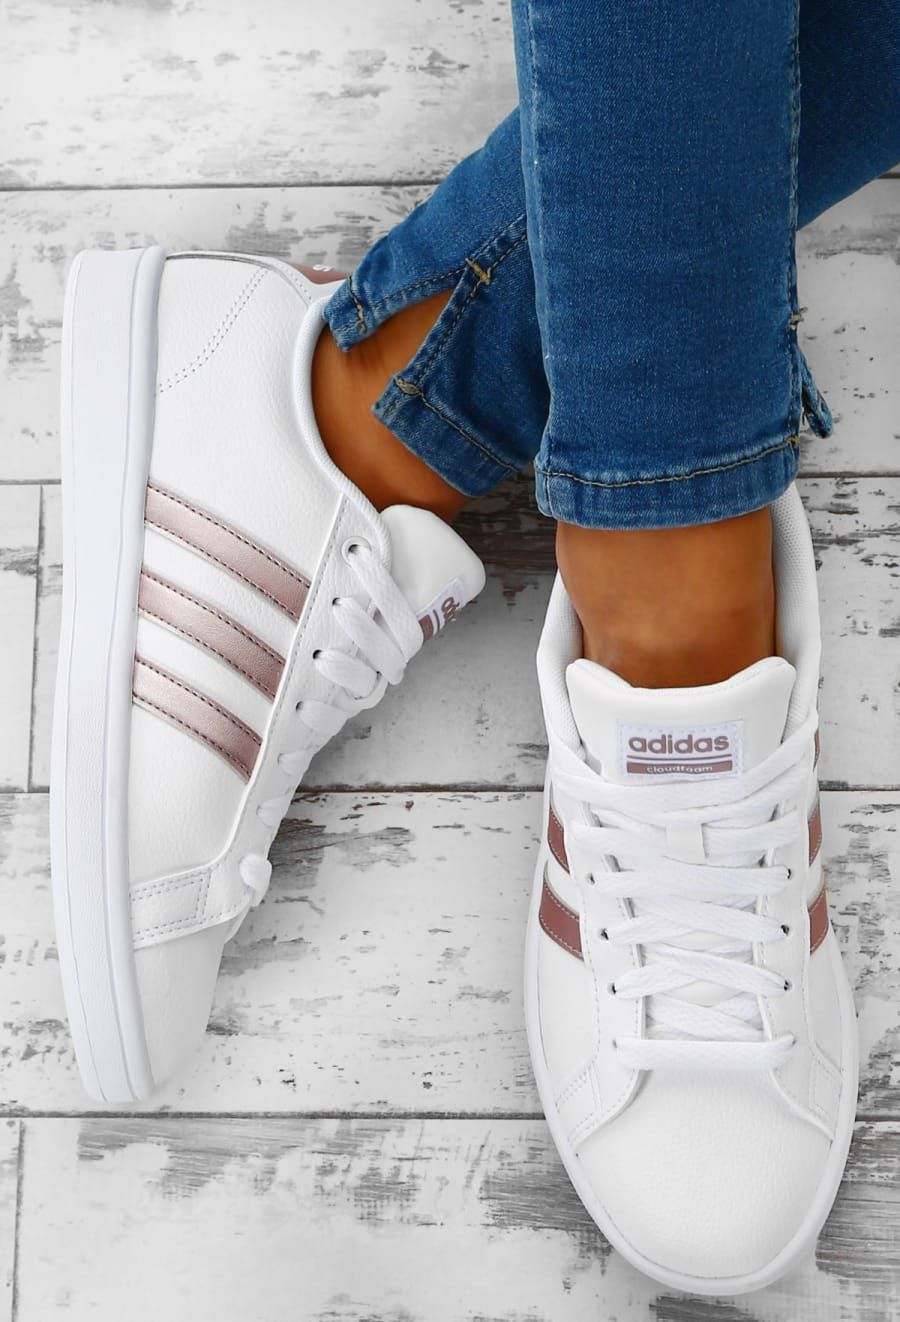 b23eff1ba165 Adidas White and Rose Gold Cloudfoam Advantage Trainers - UK 3.5 in ...